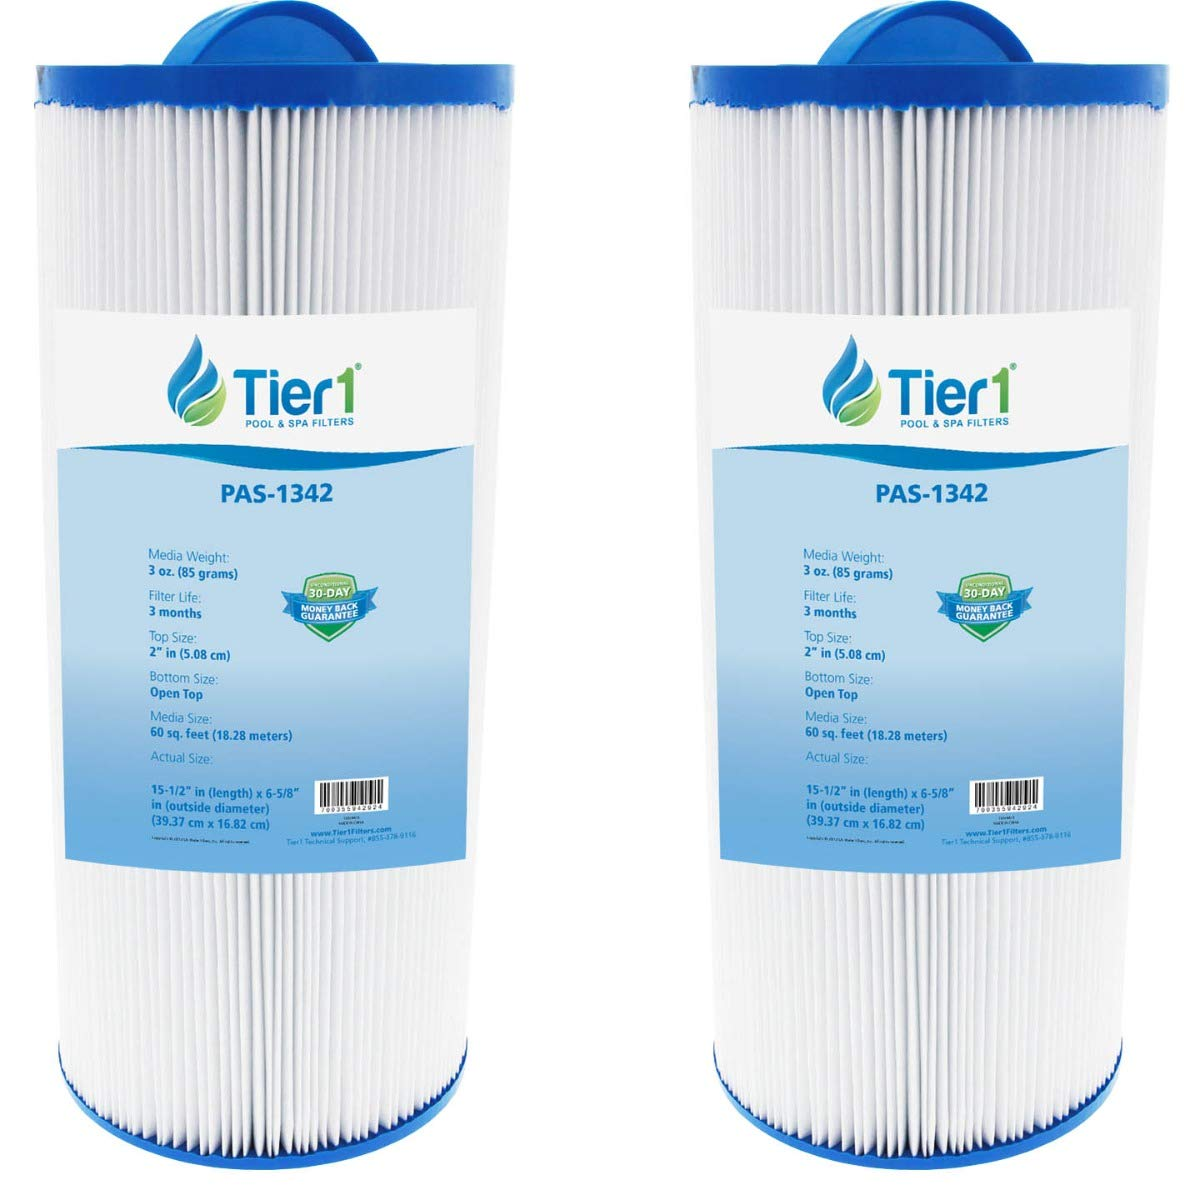 Tier1 Pool & Spa Filter Replacement for Jacuzzi J300 6541-383 Models for J300 Series Hot Tubs - Pleated Water Filter to Reduce Water Contaminants - 2 Pack